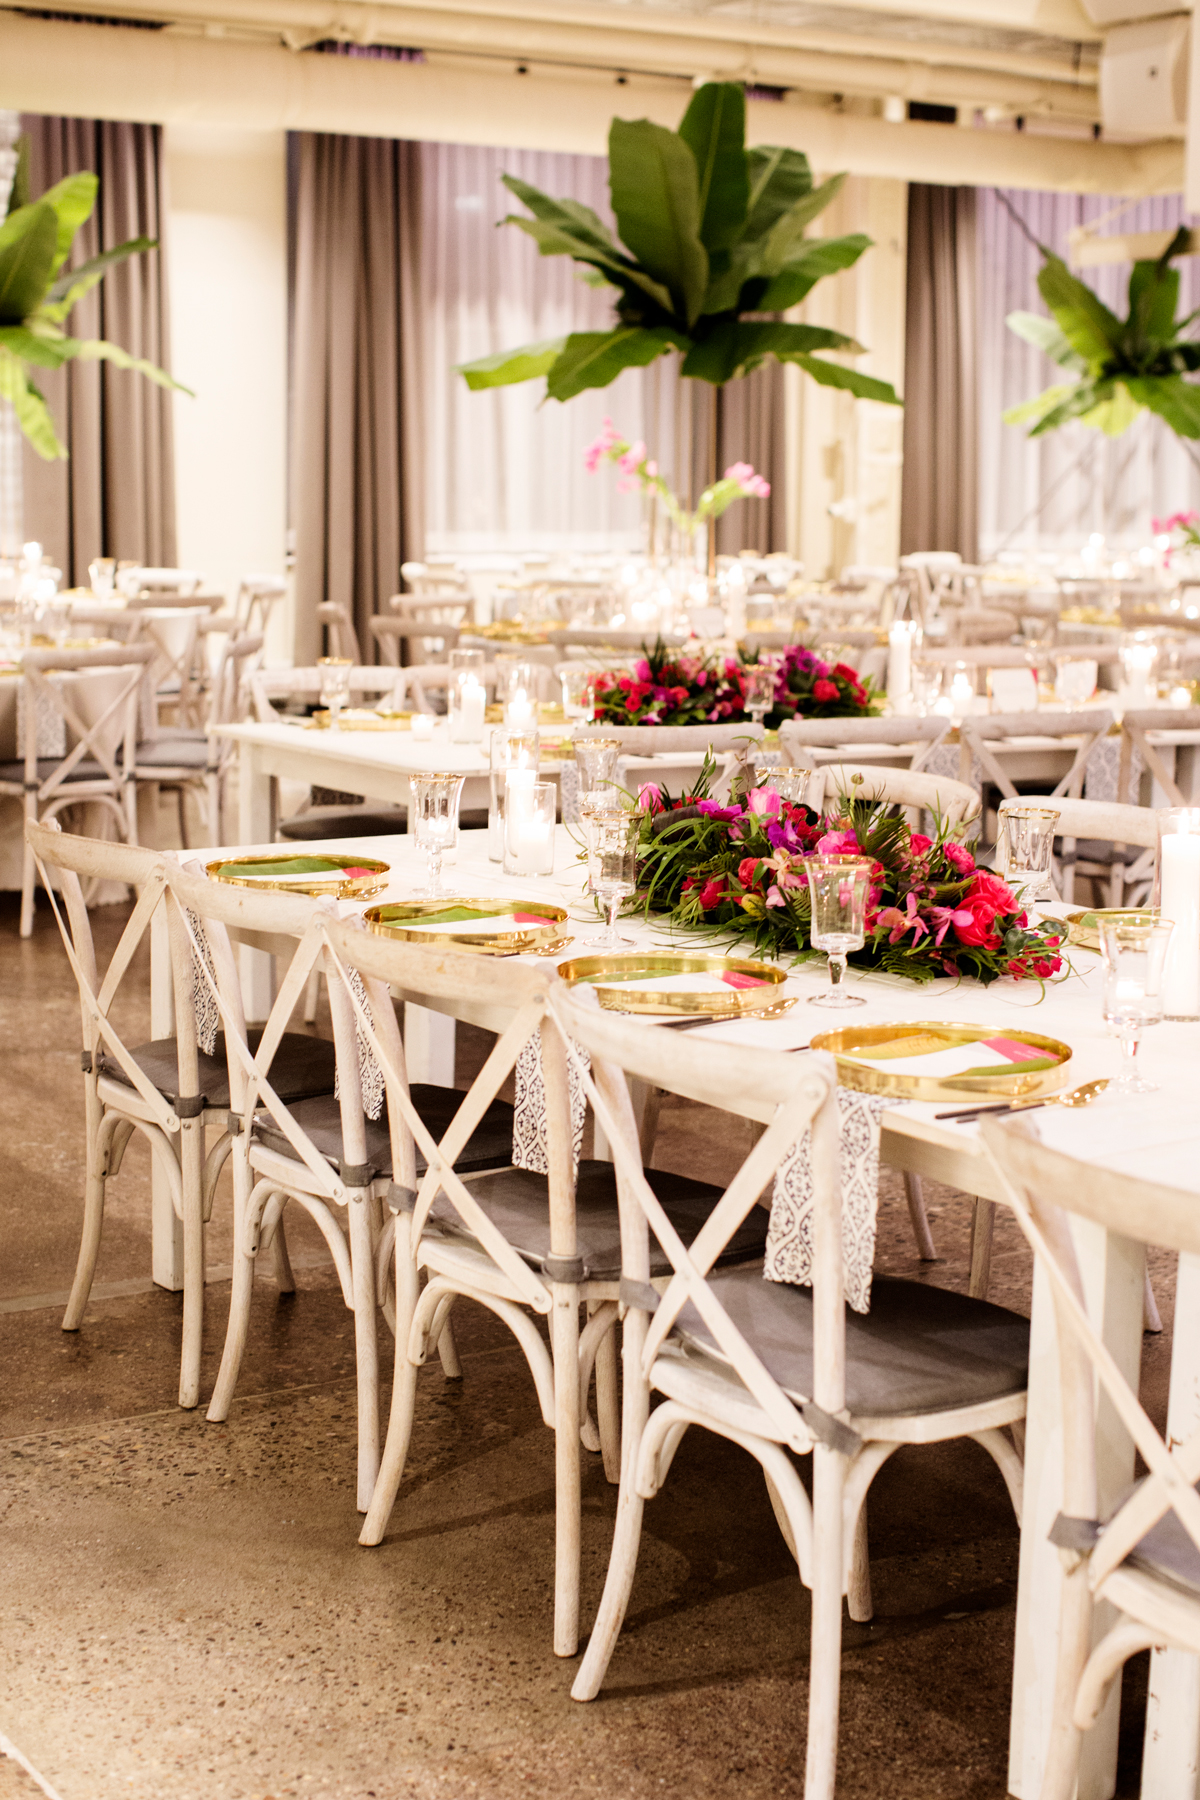 white chair and table reception set up with pink floral centerpieces